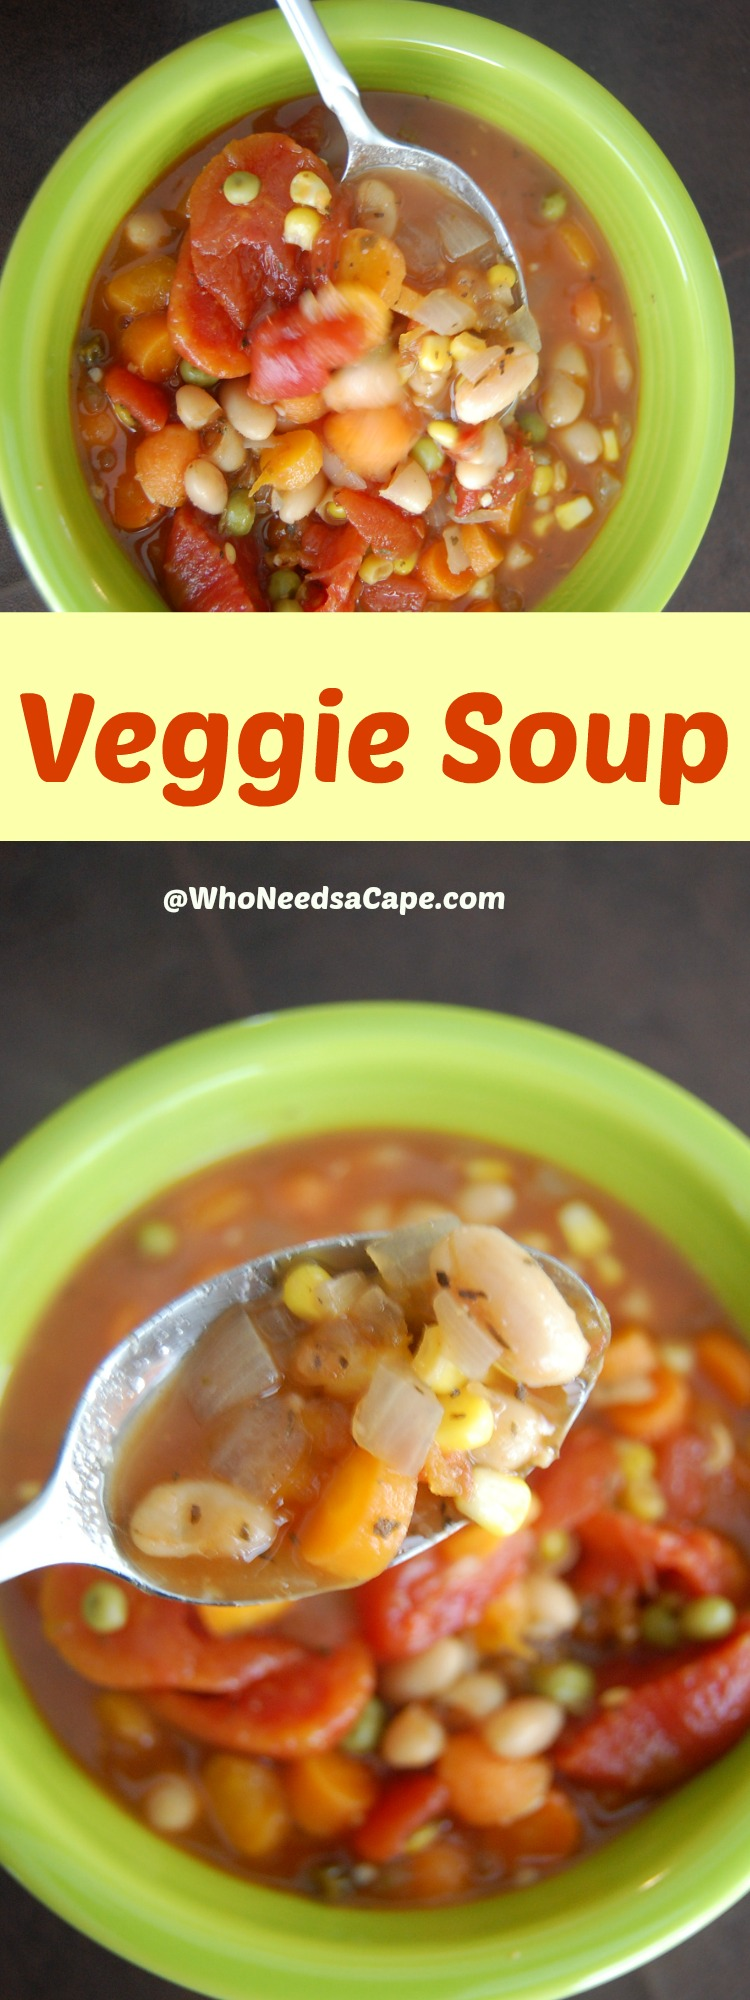 Veggie Soup - this recipe has almost no calories and is delicious. You can eat as much as you want and still drop a few pounds! A MUST Pin